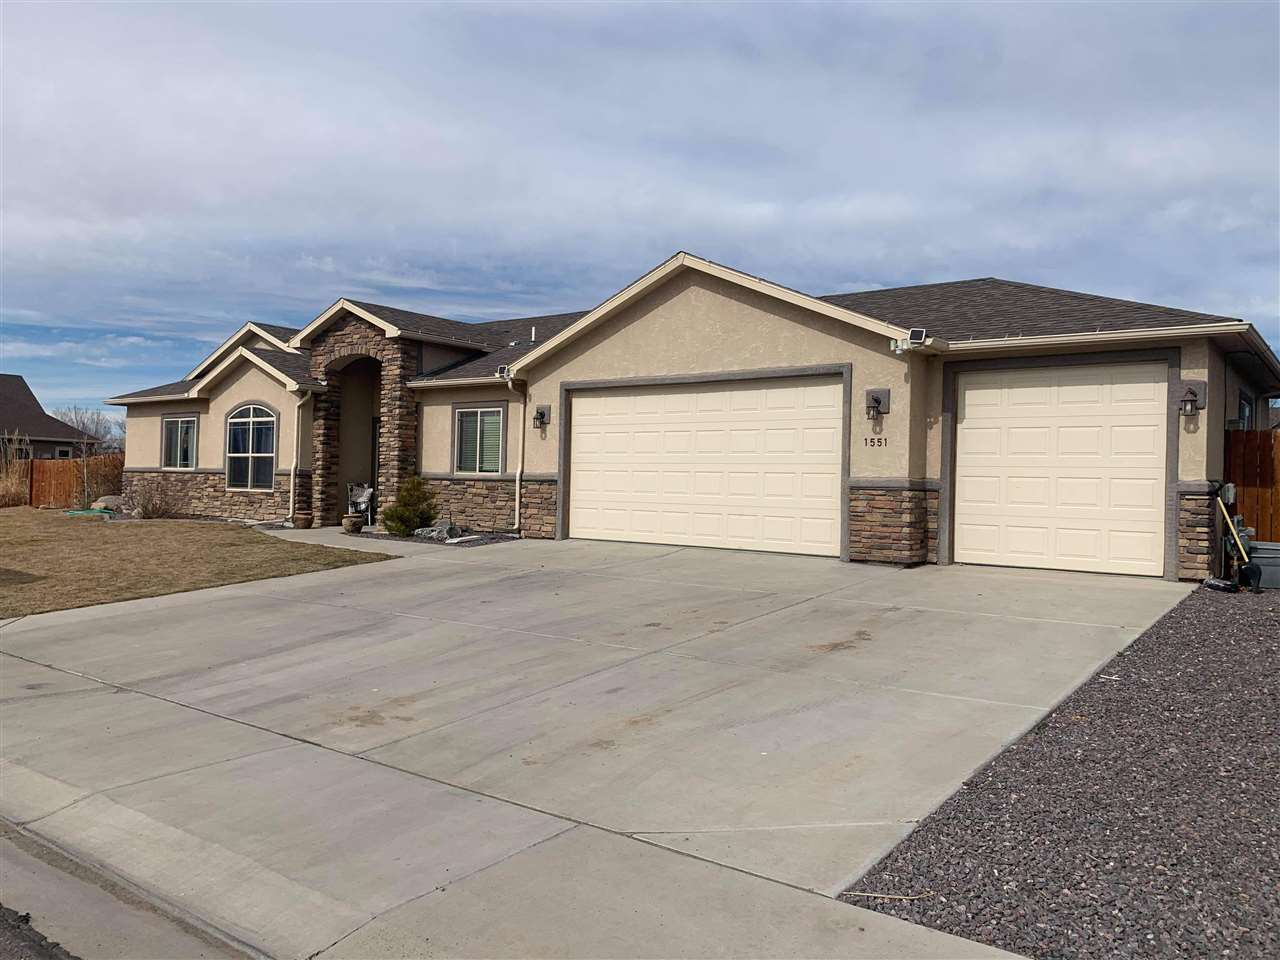 1551 Lola Court Property Photo - Fruita, CO real estate listing